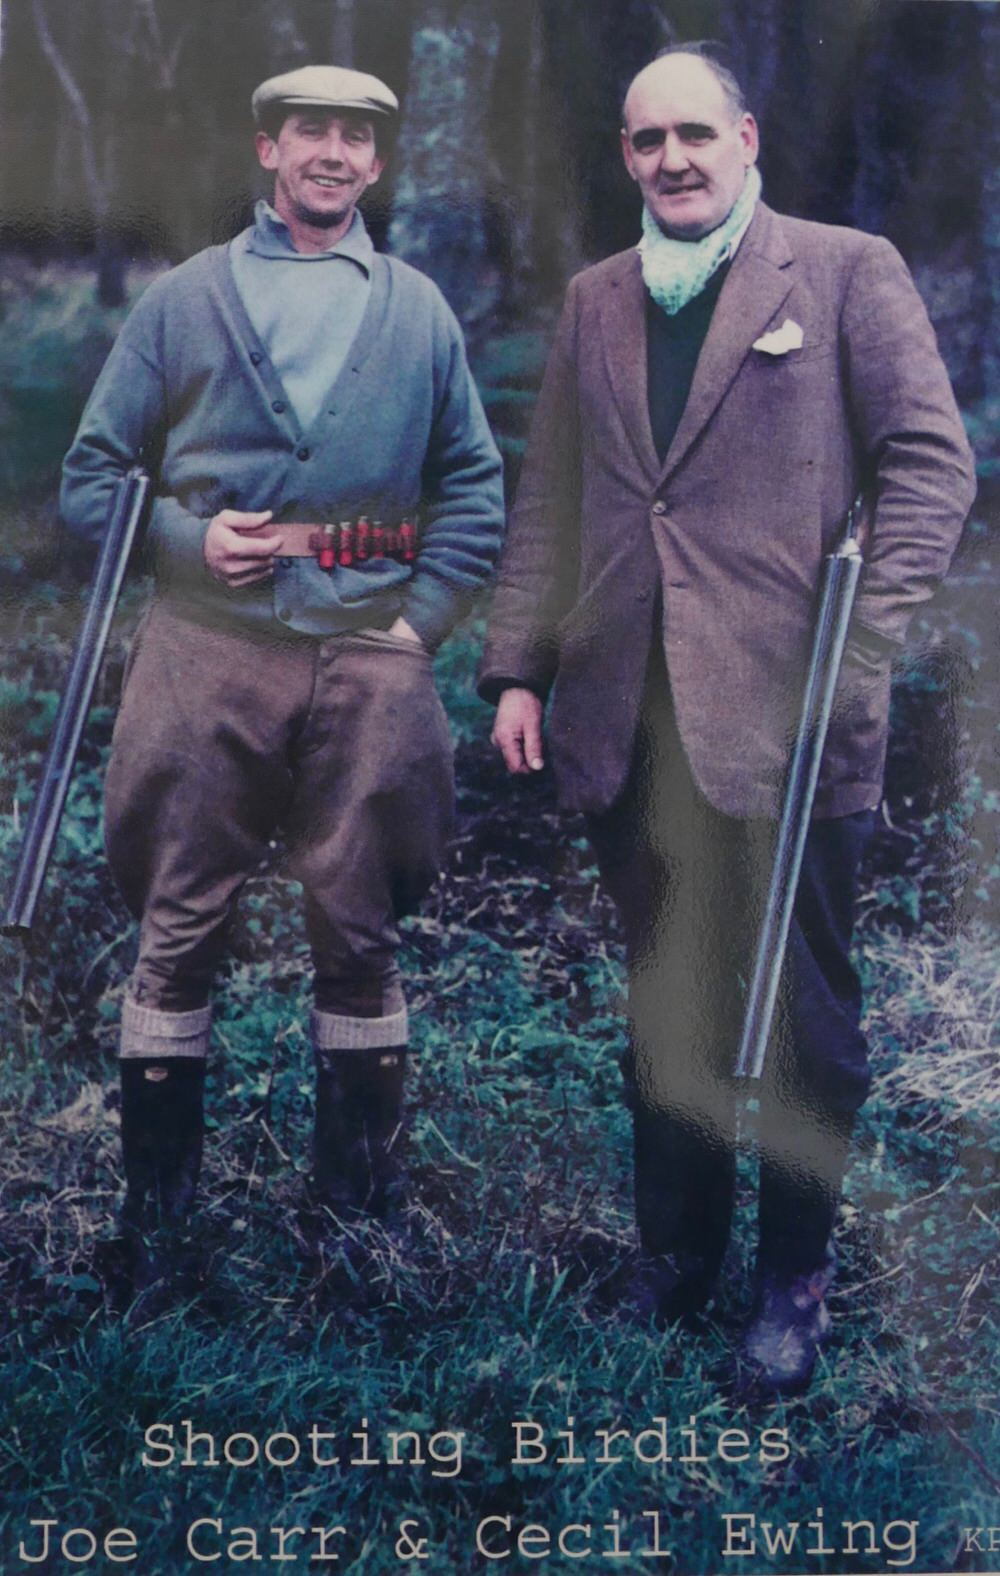 Joe Carr and Cecil Ewing won 22 West of Ireland titles between 1930 and 1966